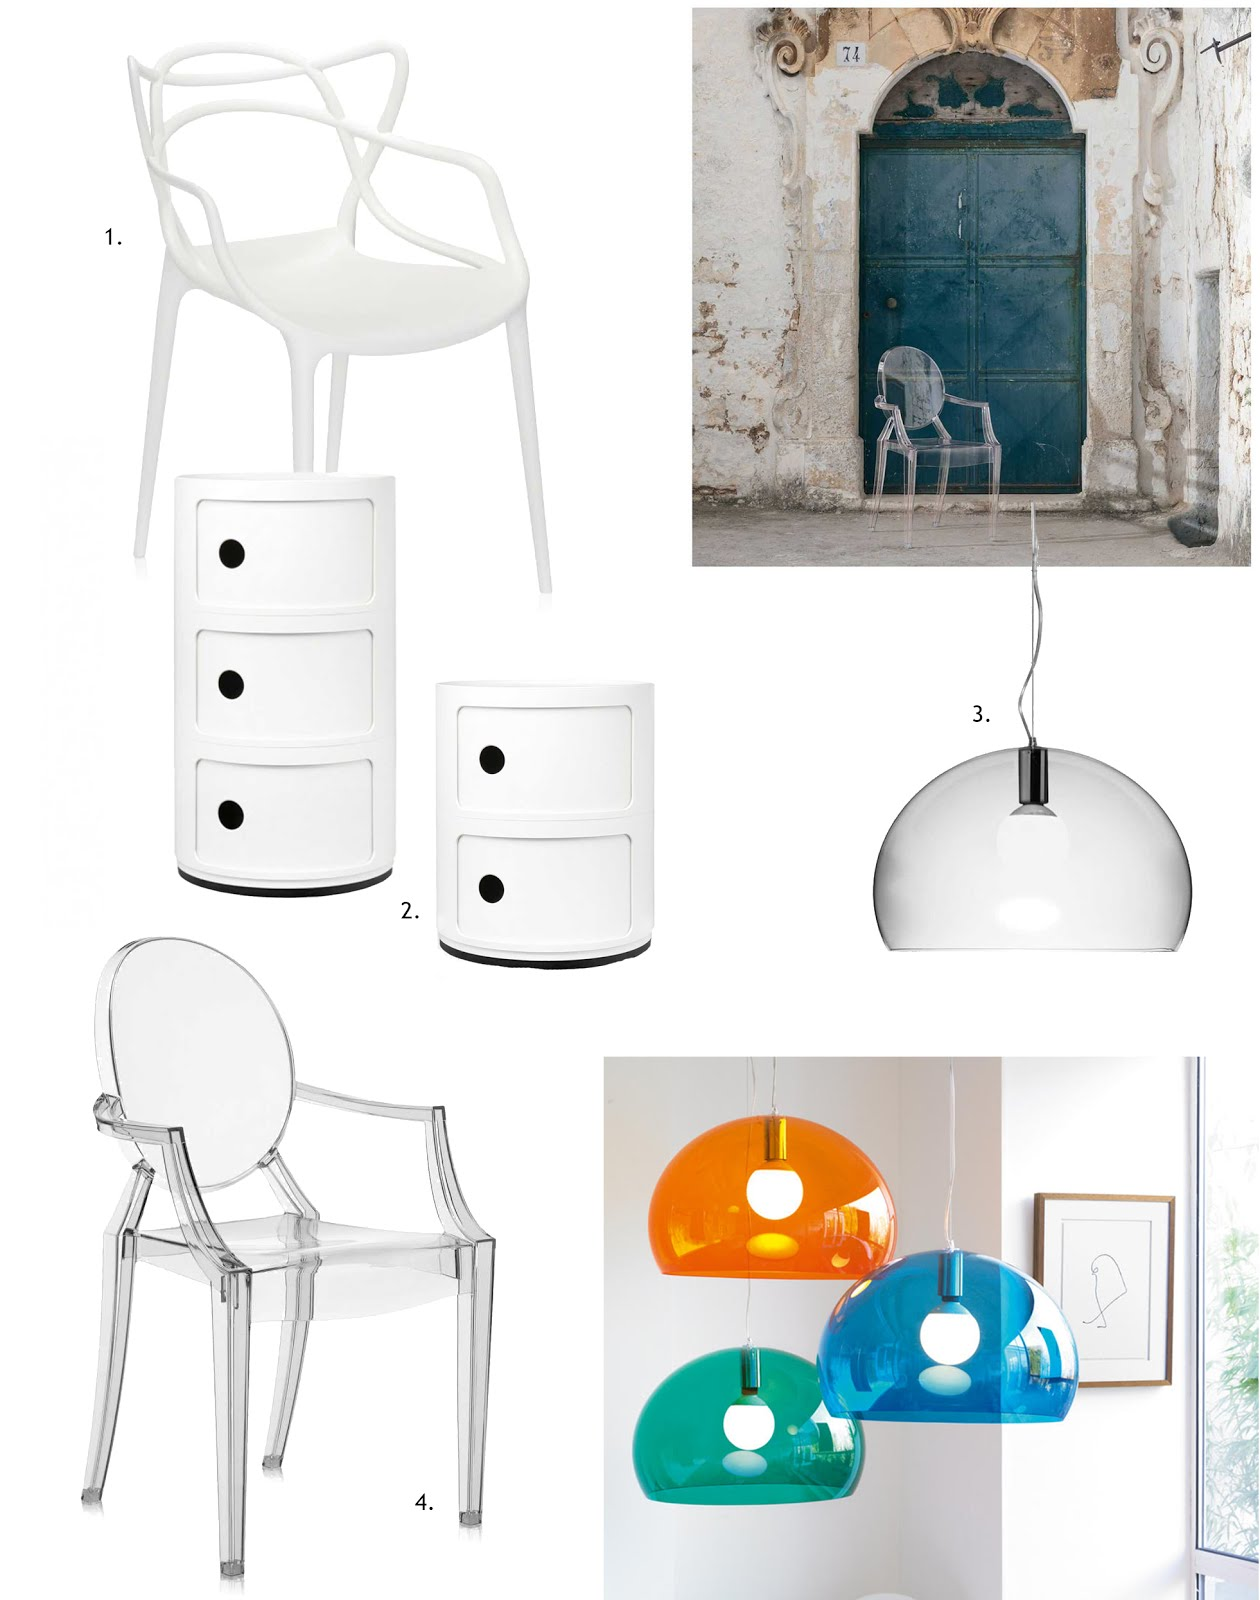 Kartell, mister design, Louis Ghost chair, FL/Y lamp, componibili, interieur blogger, belgie, masters chair